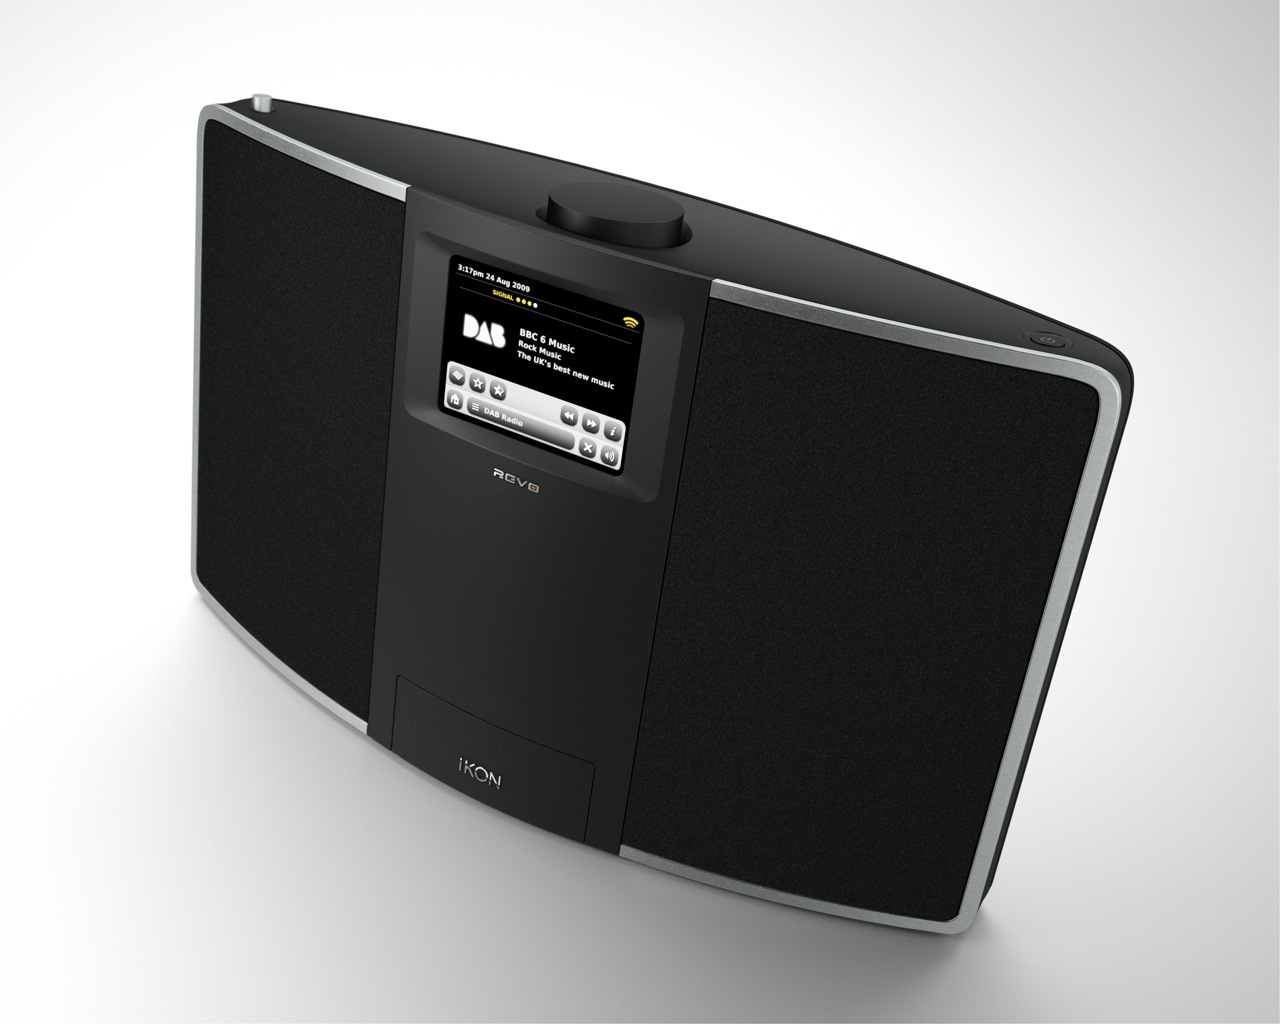 Revo IKON DAB, internet radio & iPod dock with 3.5-inch touchscreen & WiFi